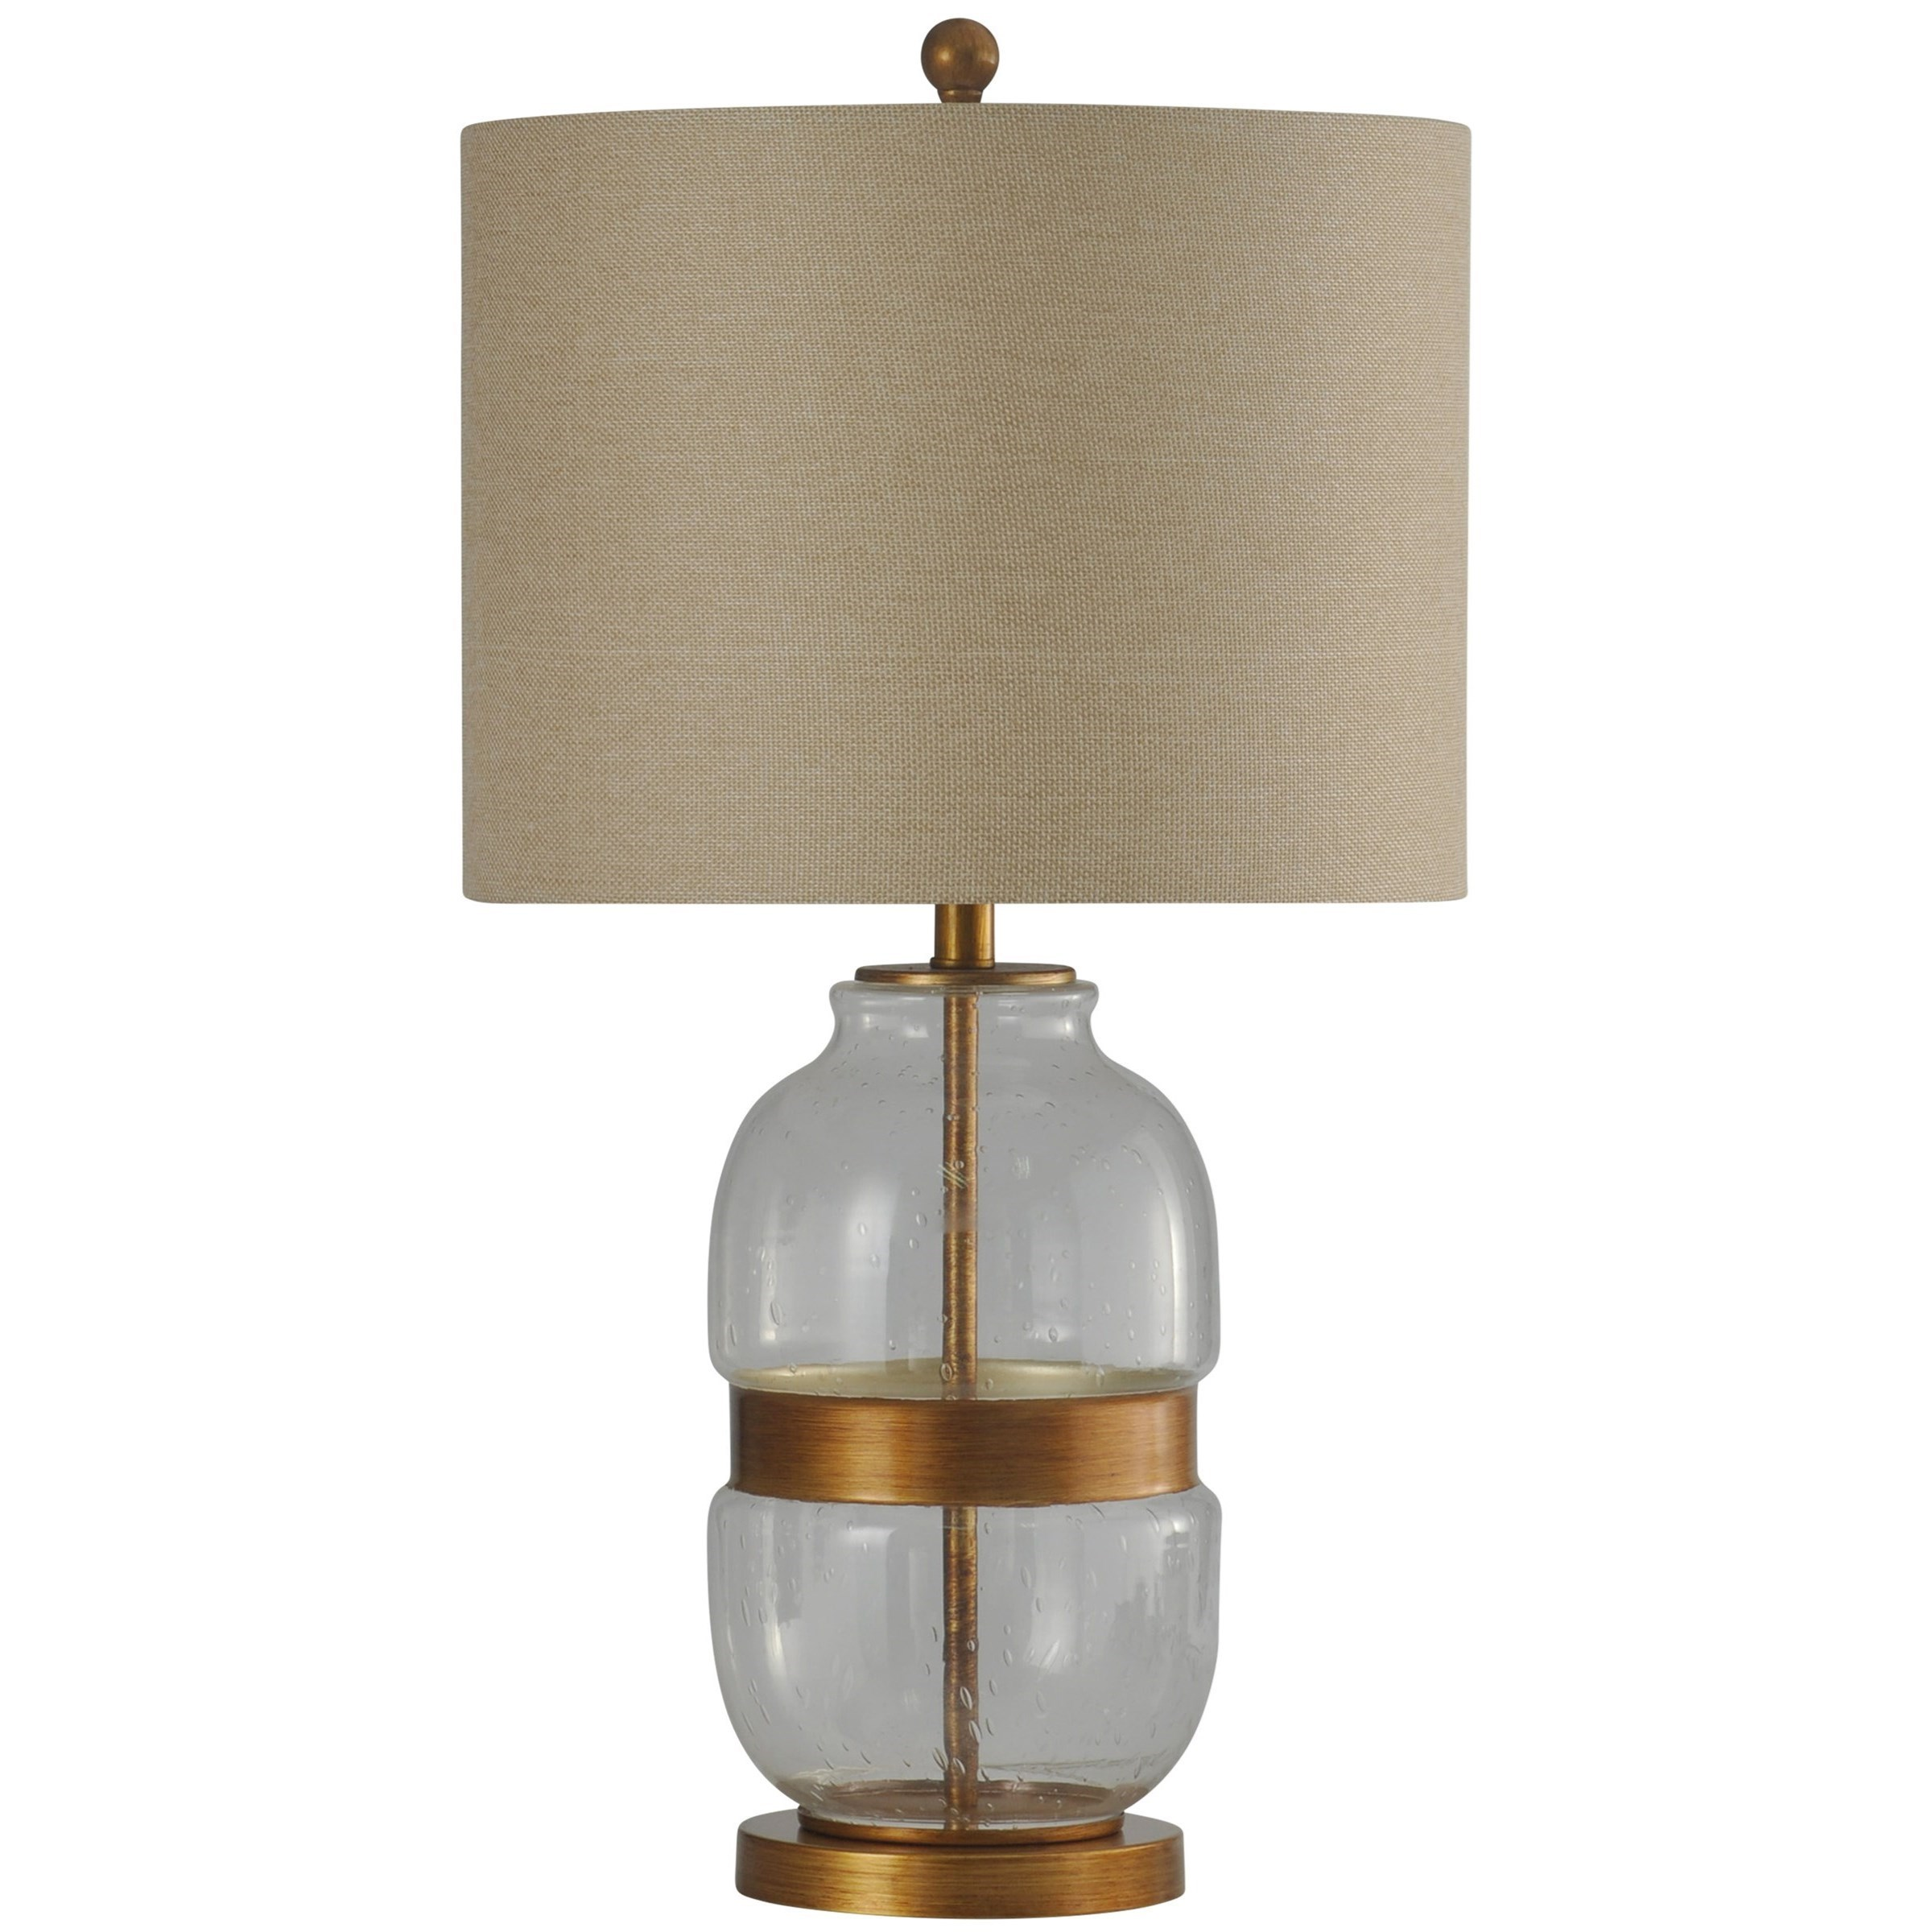 StyleCraft LampsMetal U0026 Glass Base Transitional Table Lamp